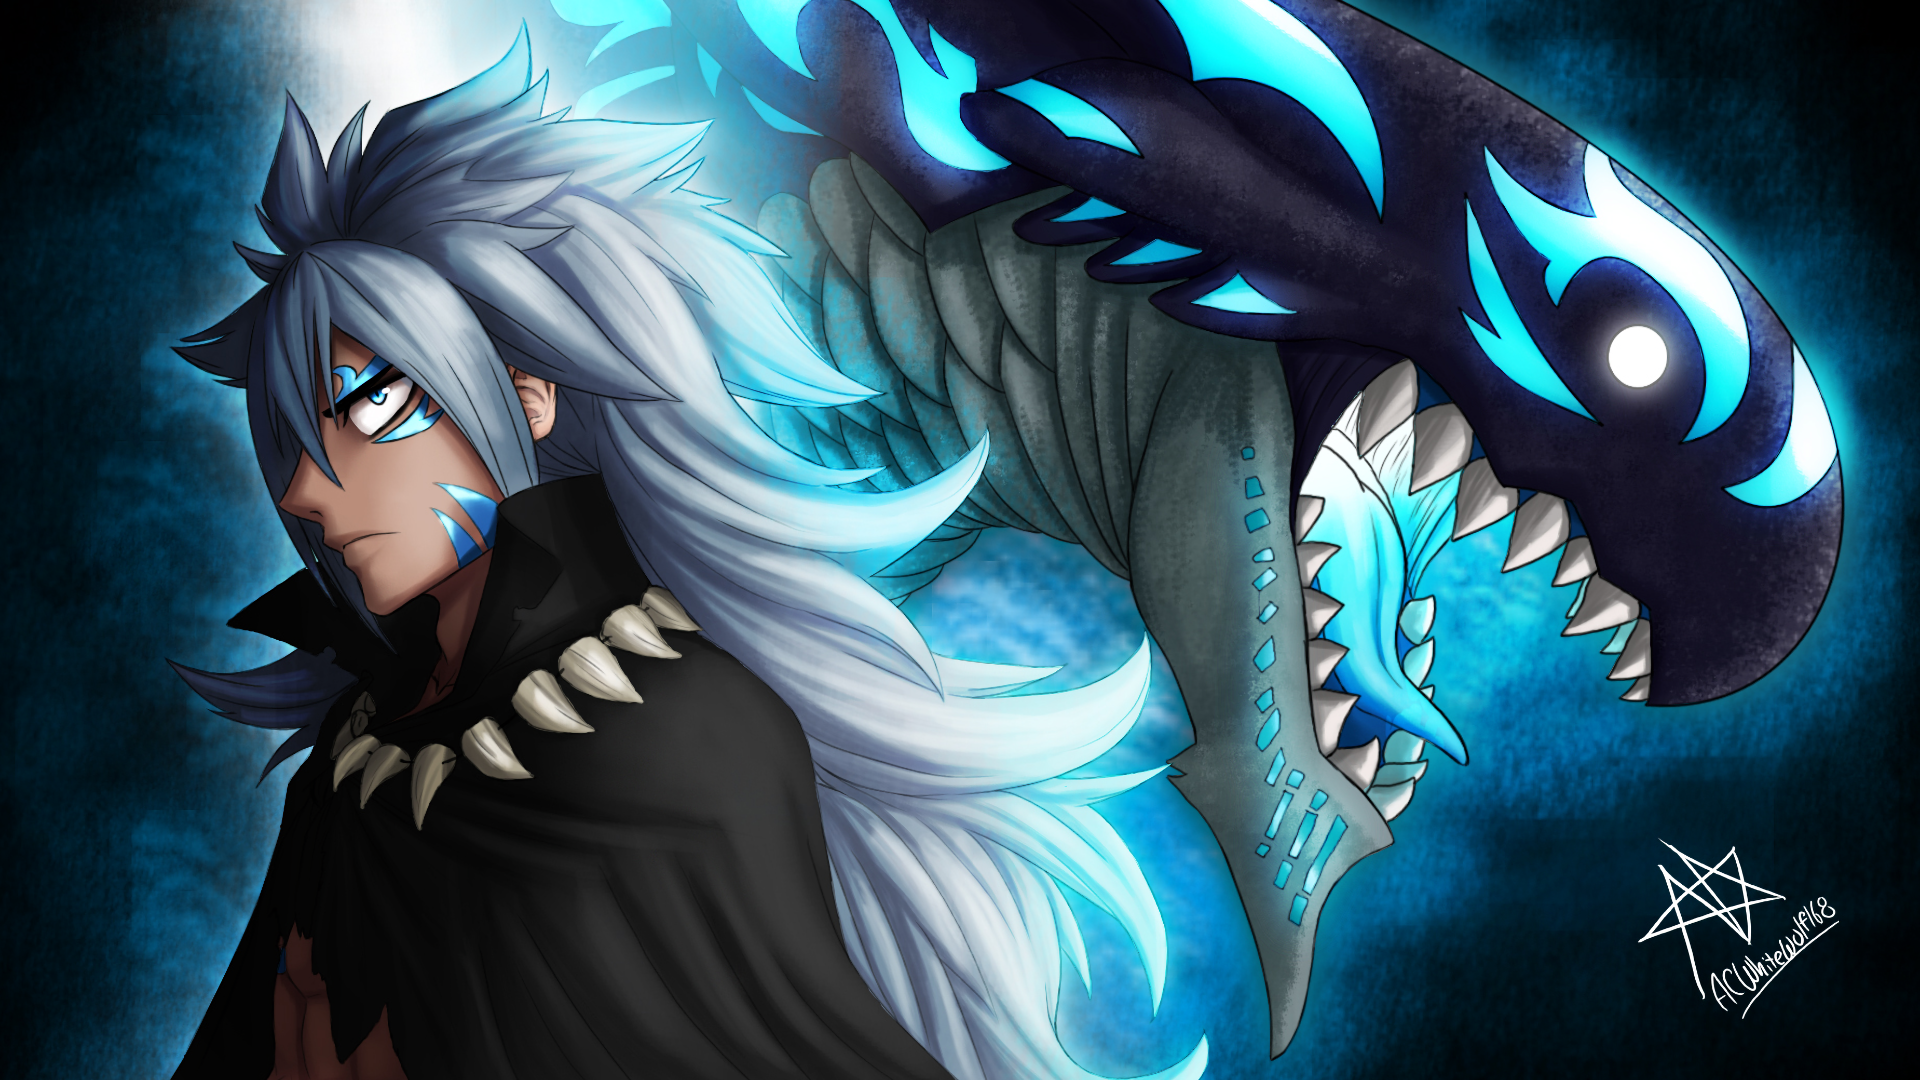 26 Acnologia (Fairy Tail) HD Wallpapers